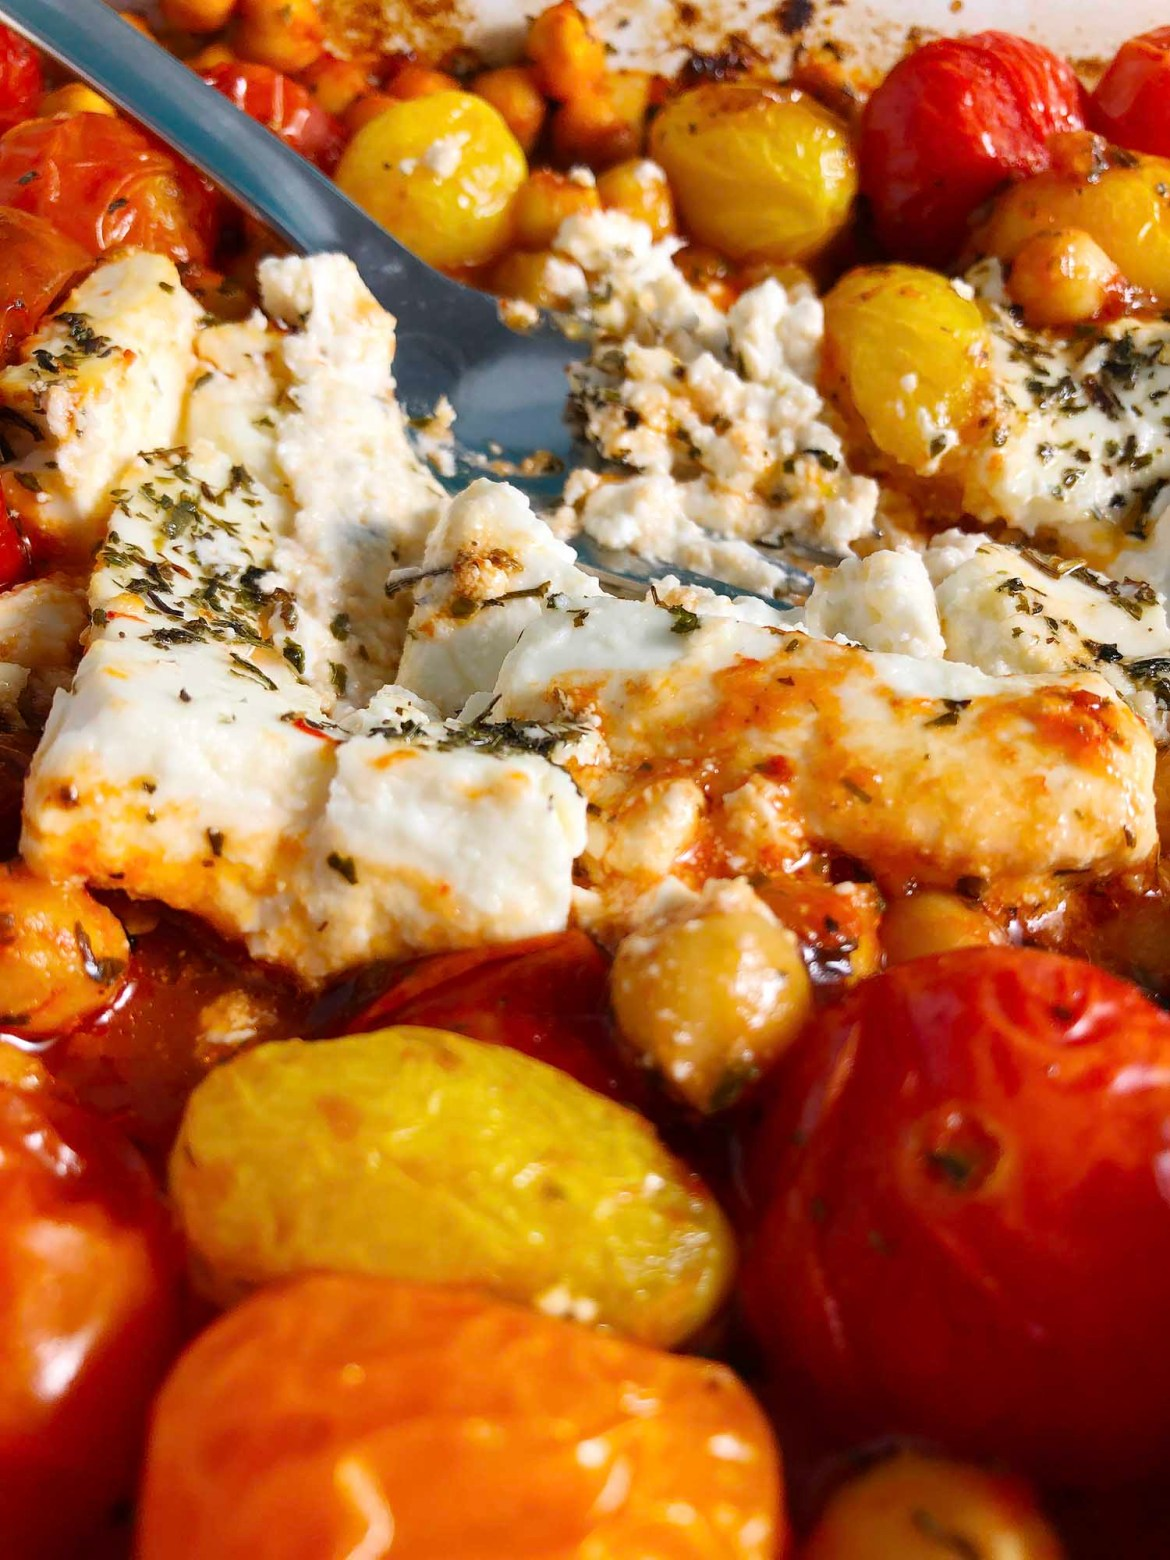 Close up of Chickpea Feta Bake, with fork mashing the baked feta cheese, surrounded by roasted cherry tomatoes and chickpeas.